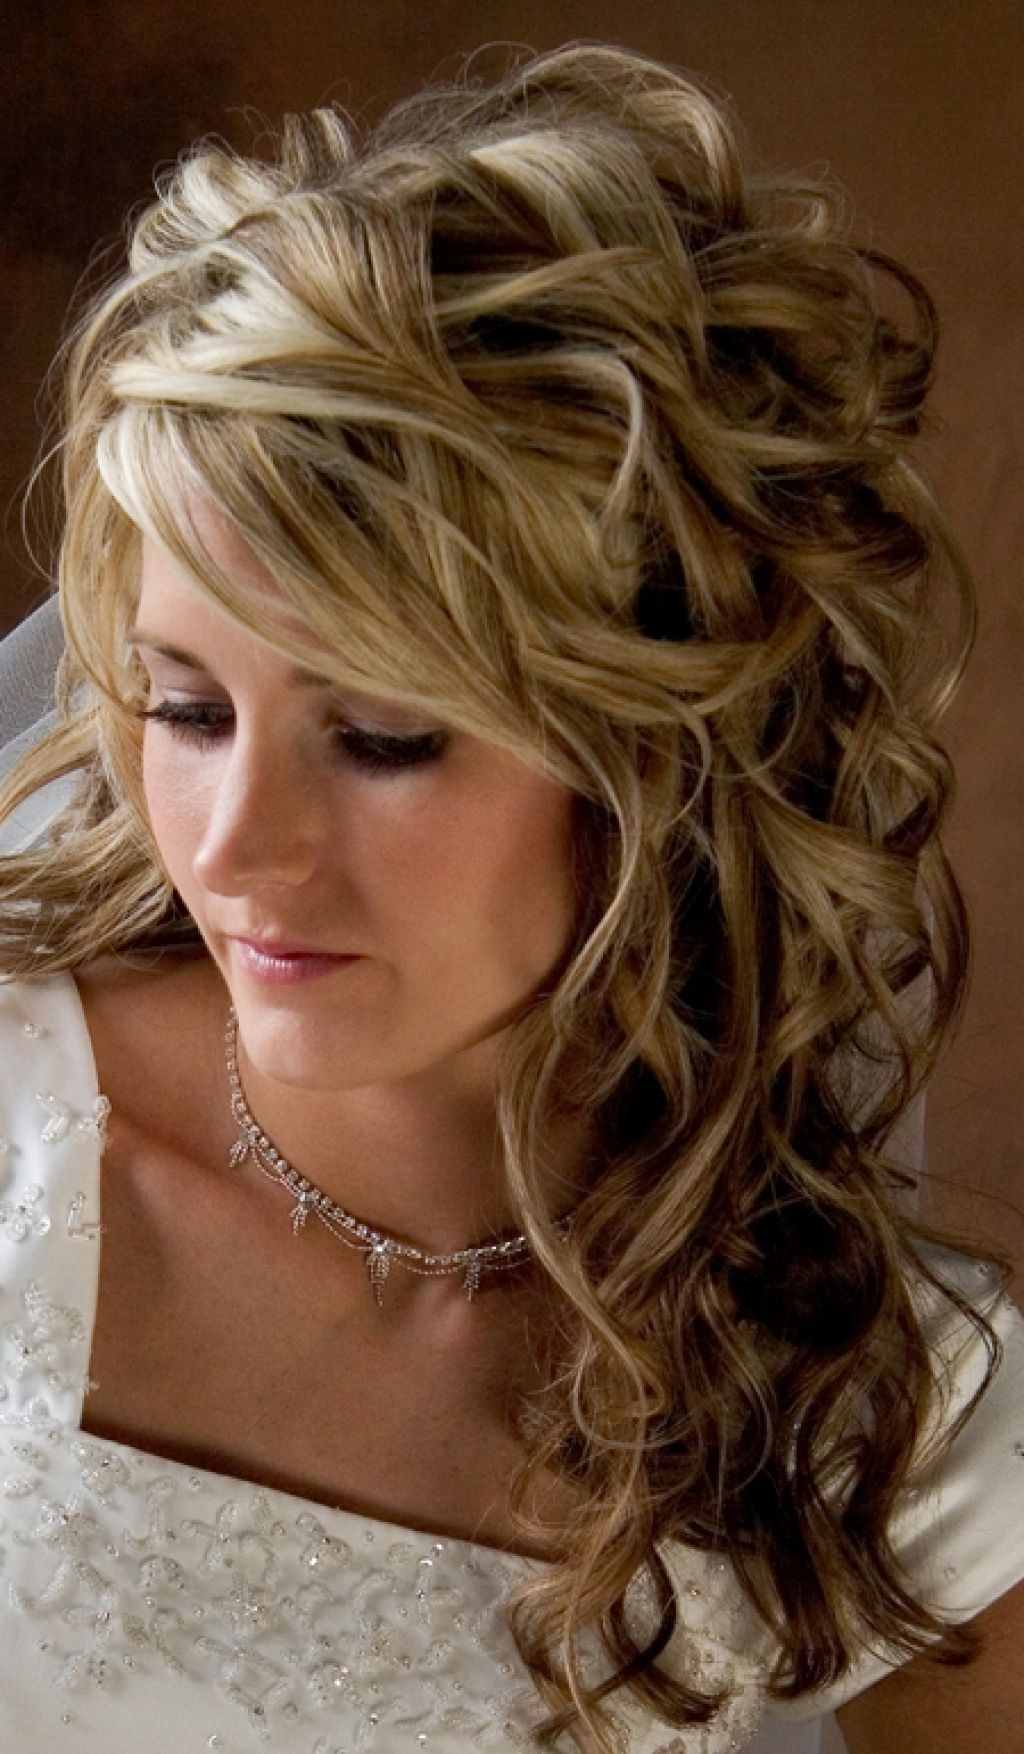 Bridal Hairstyle Design2 200x300 Bridal Hairstyle Design Wedding And Curly Hairsty Short Hair Styles 2014 Curly Wedding Hair Wedding Hairstyles For Long Hair